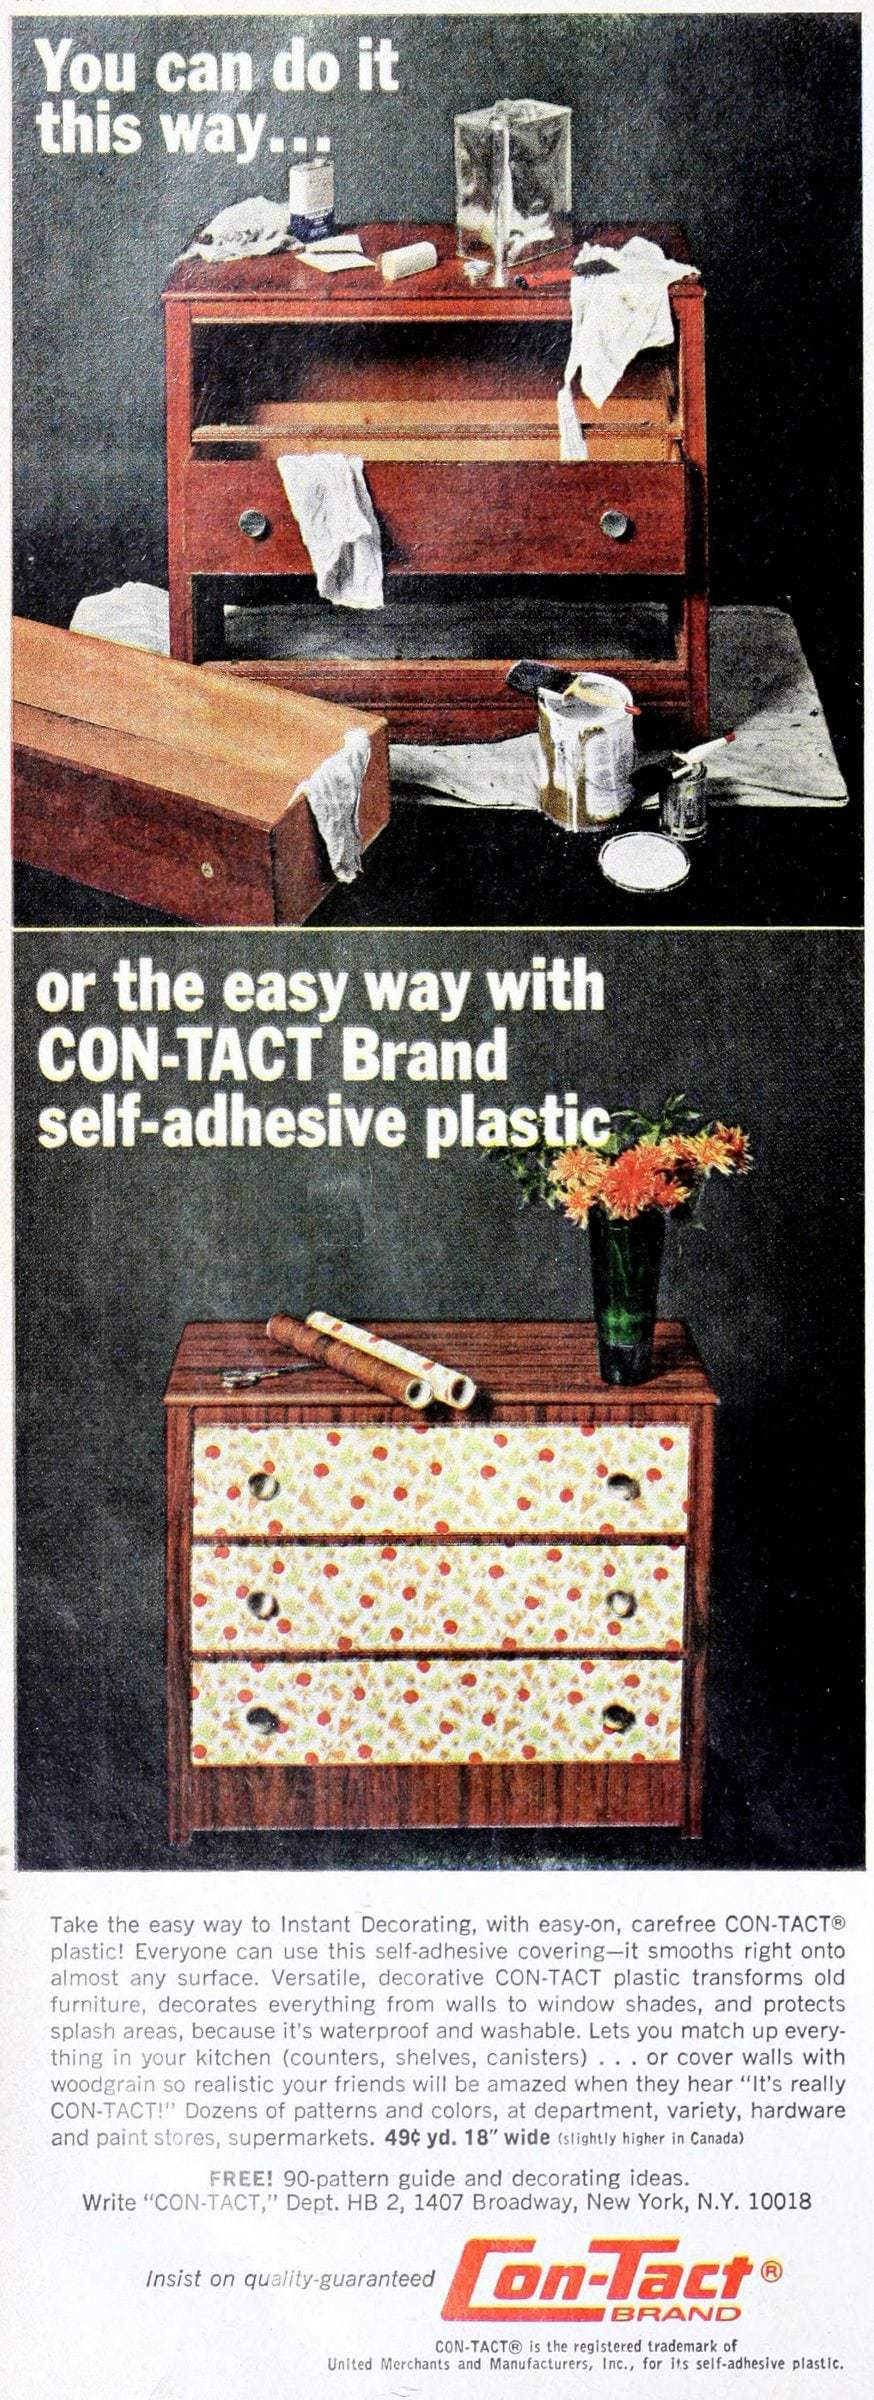 Make over furniture with sticky plastic coverings - Retro home decor